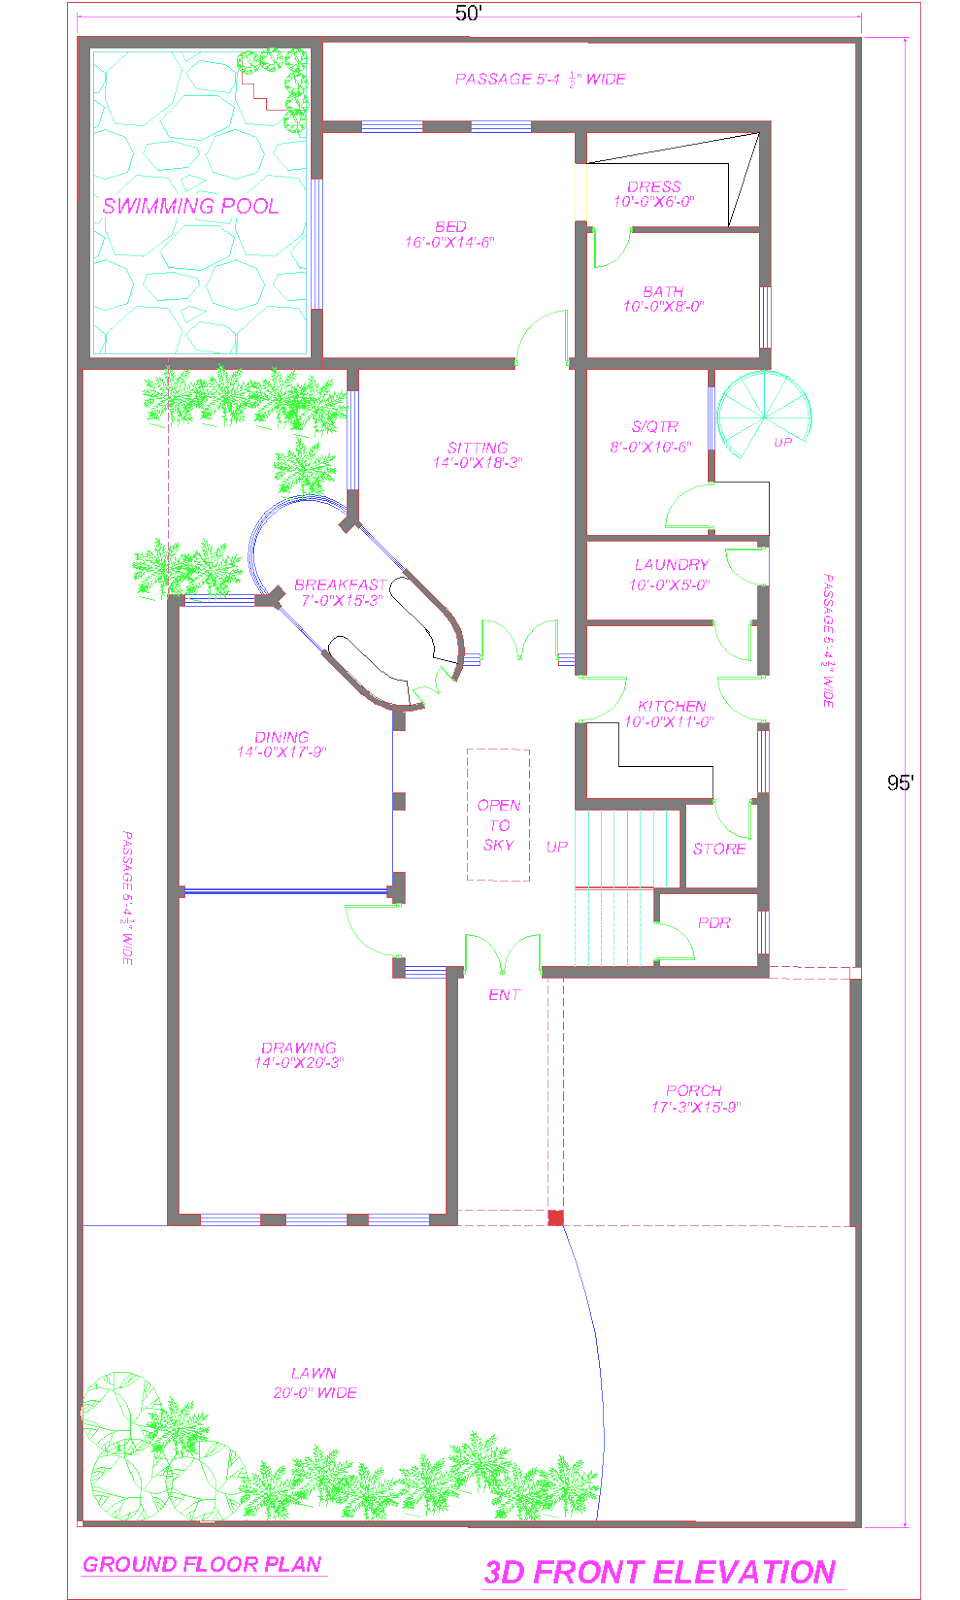 1 Kanal Ground Floor Plan With Swiming Pool Png 960 1600 House Plans How To Plan Ground Floor Plan